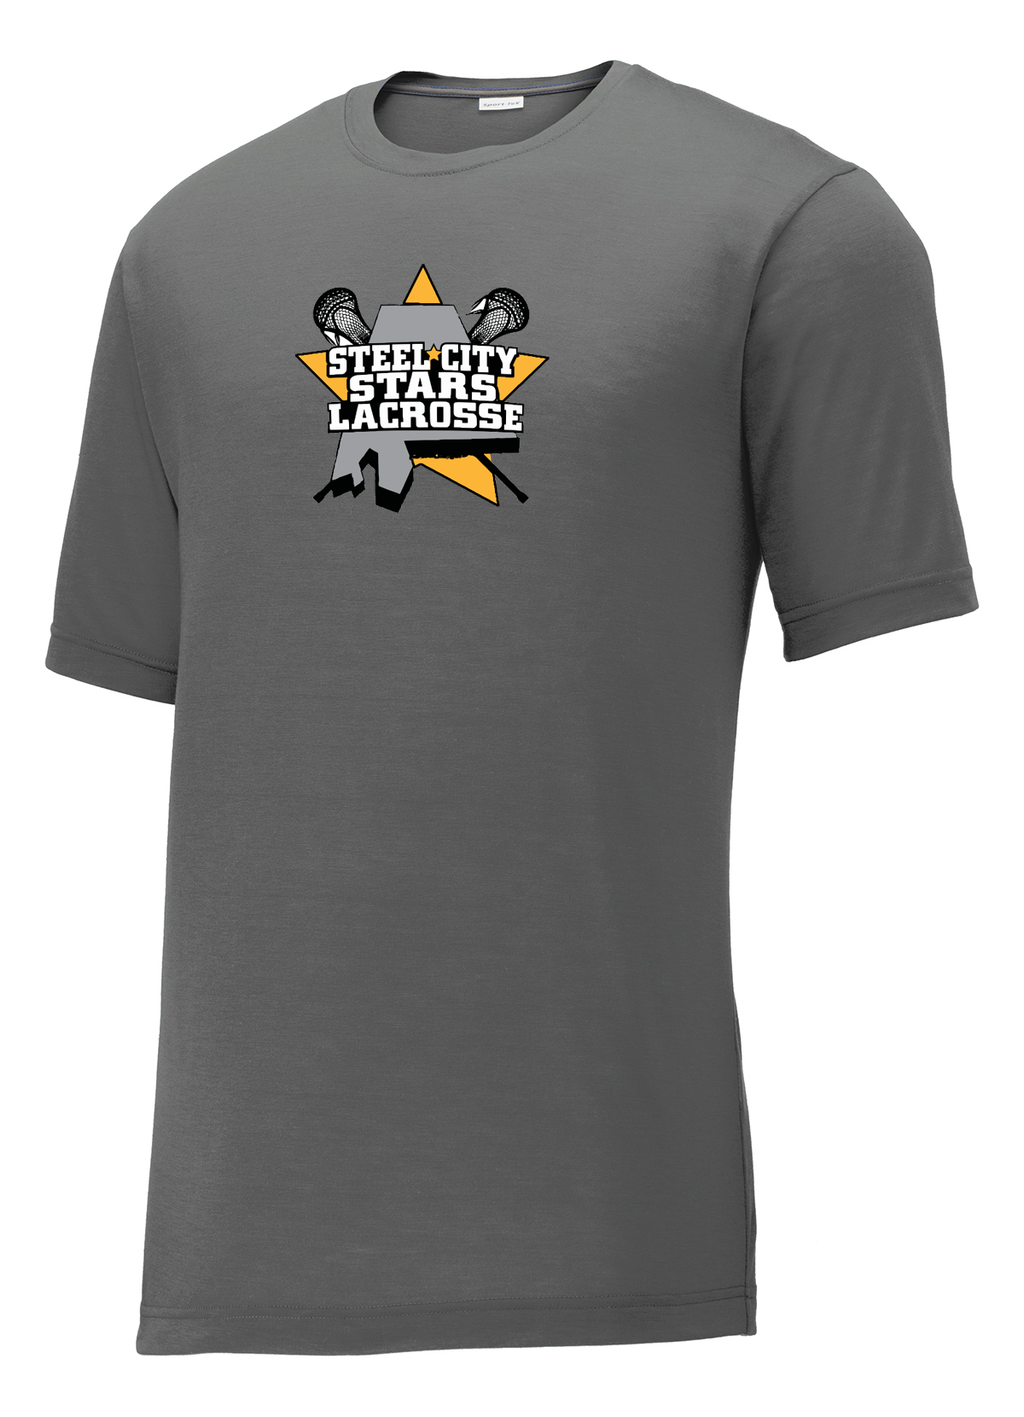 Stars Lacrosse CottonTouch Performance T-Shirt